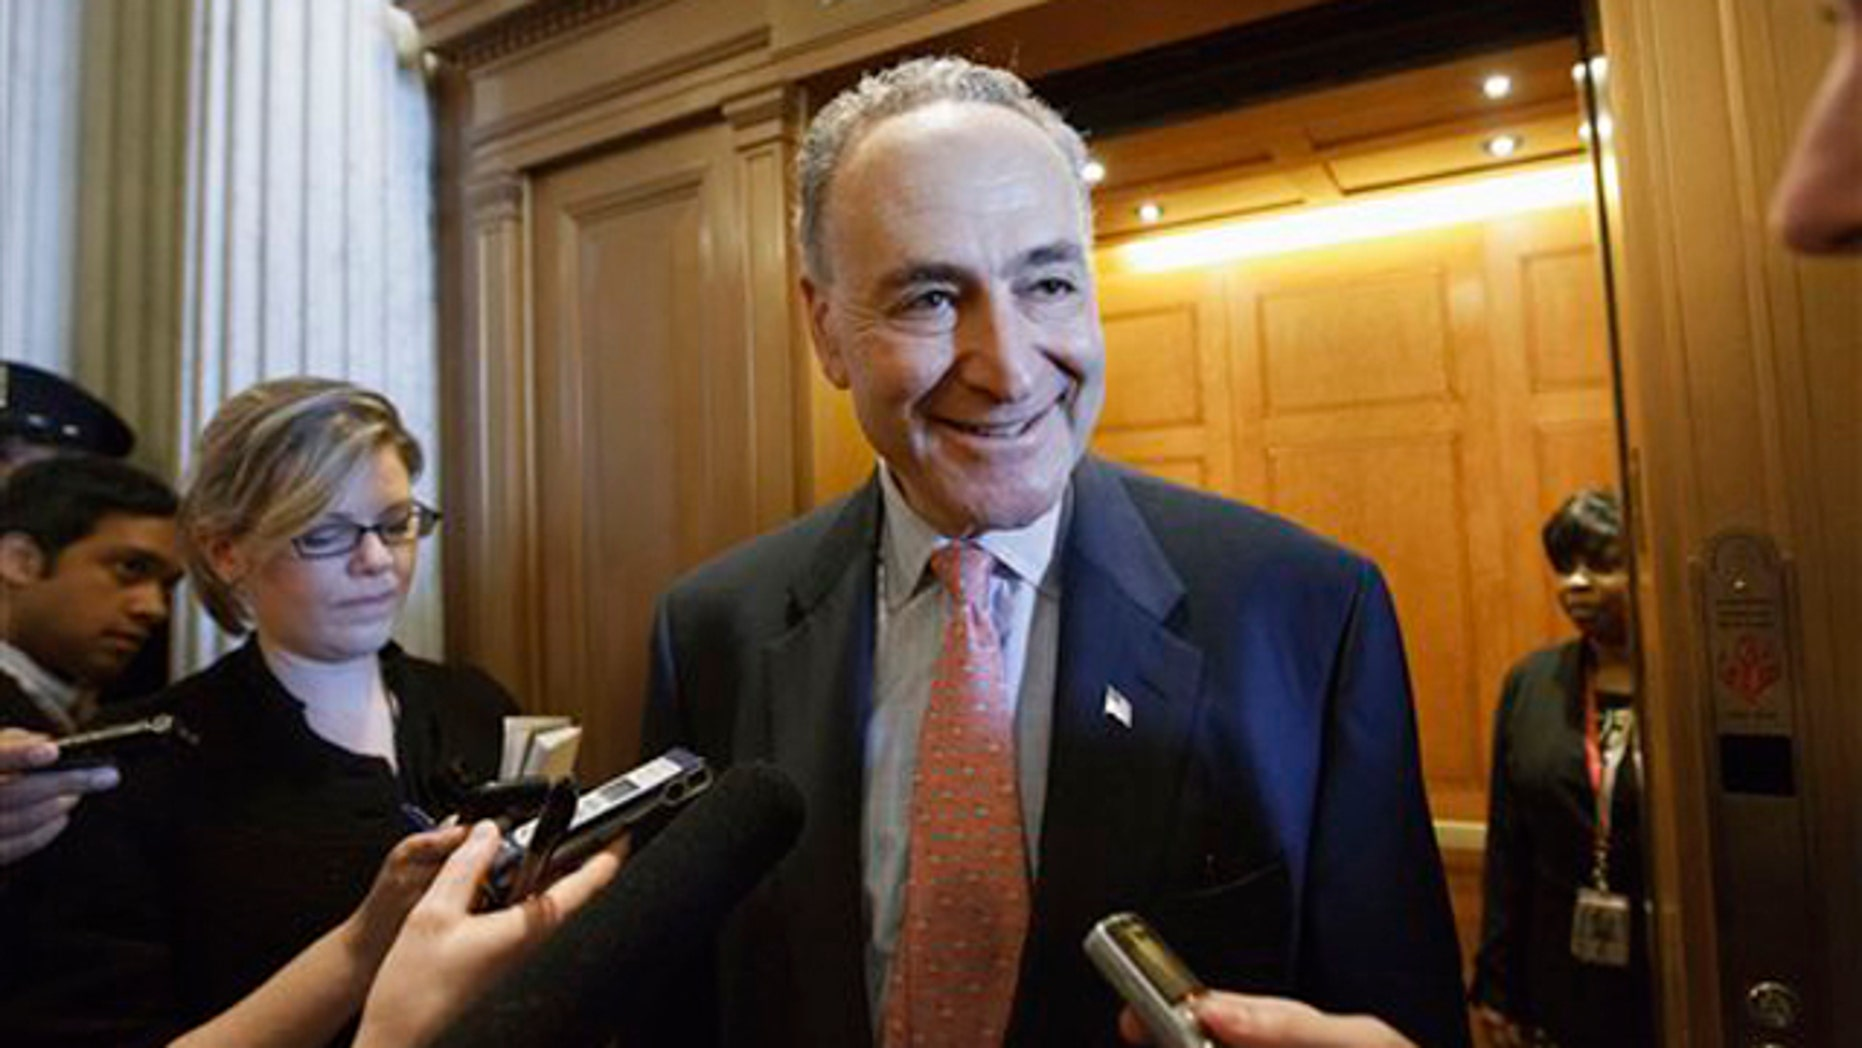 FILE: Feb. 17, 2012: Sen. Chuck Schumer speaks to reporters on Capitol Hill in Washington.